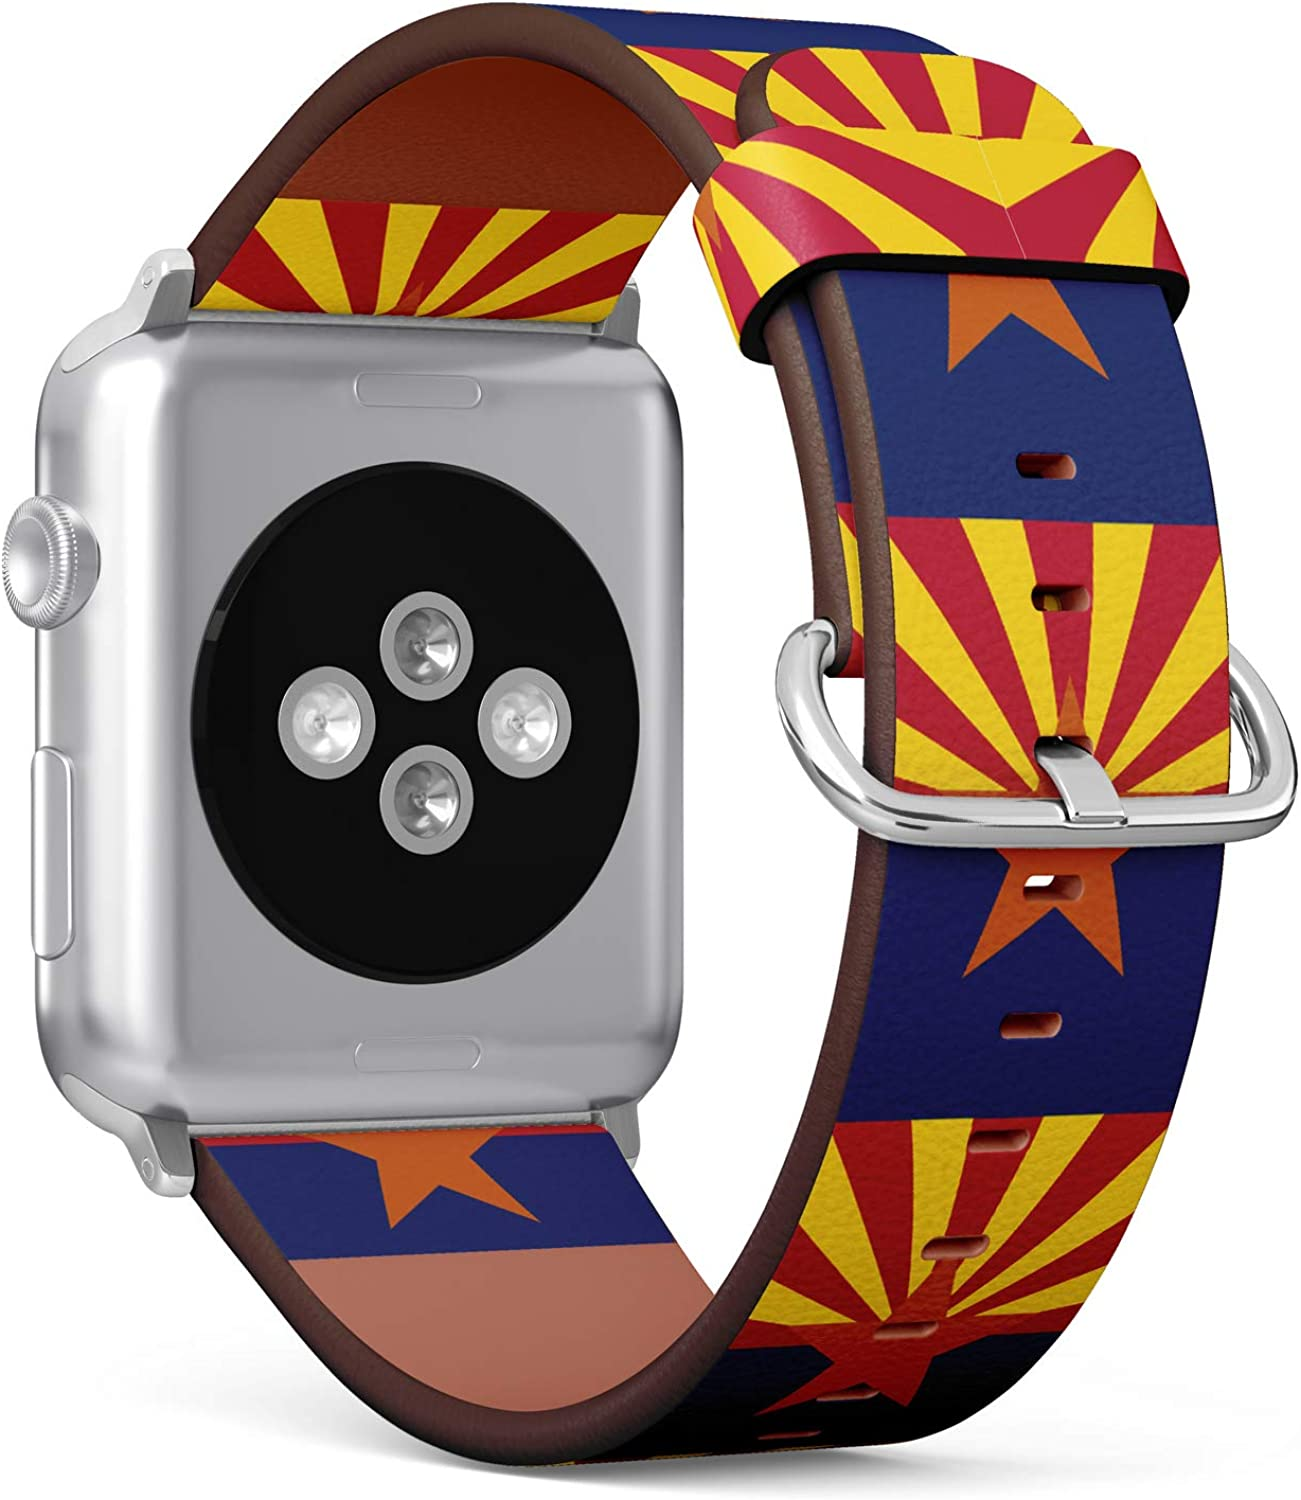 (State Flag of Arizona) Patterned Leather Wristband Strap for Apple Watch Series 4/3/2/1 gen,Replacement for iWatch 38mm / 40mm Bands